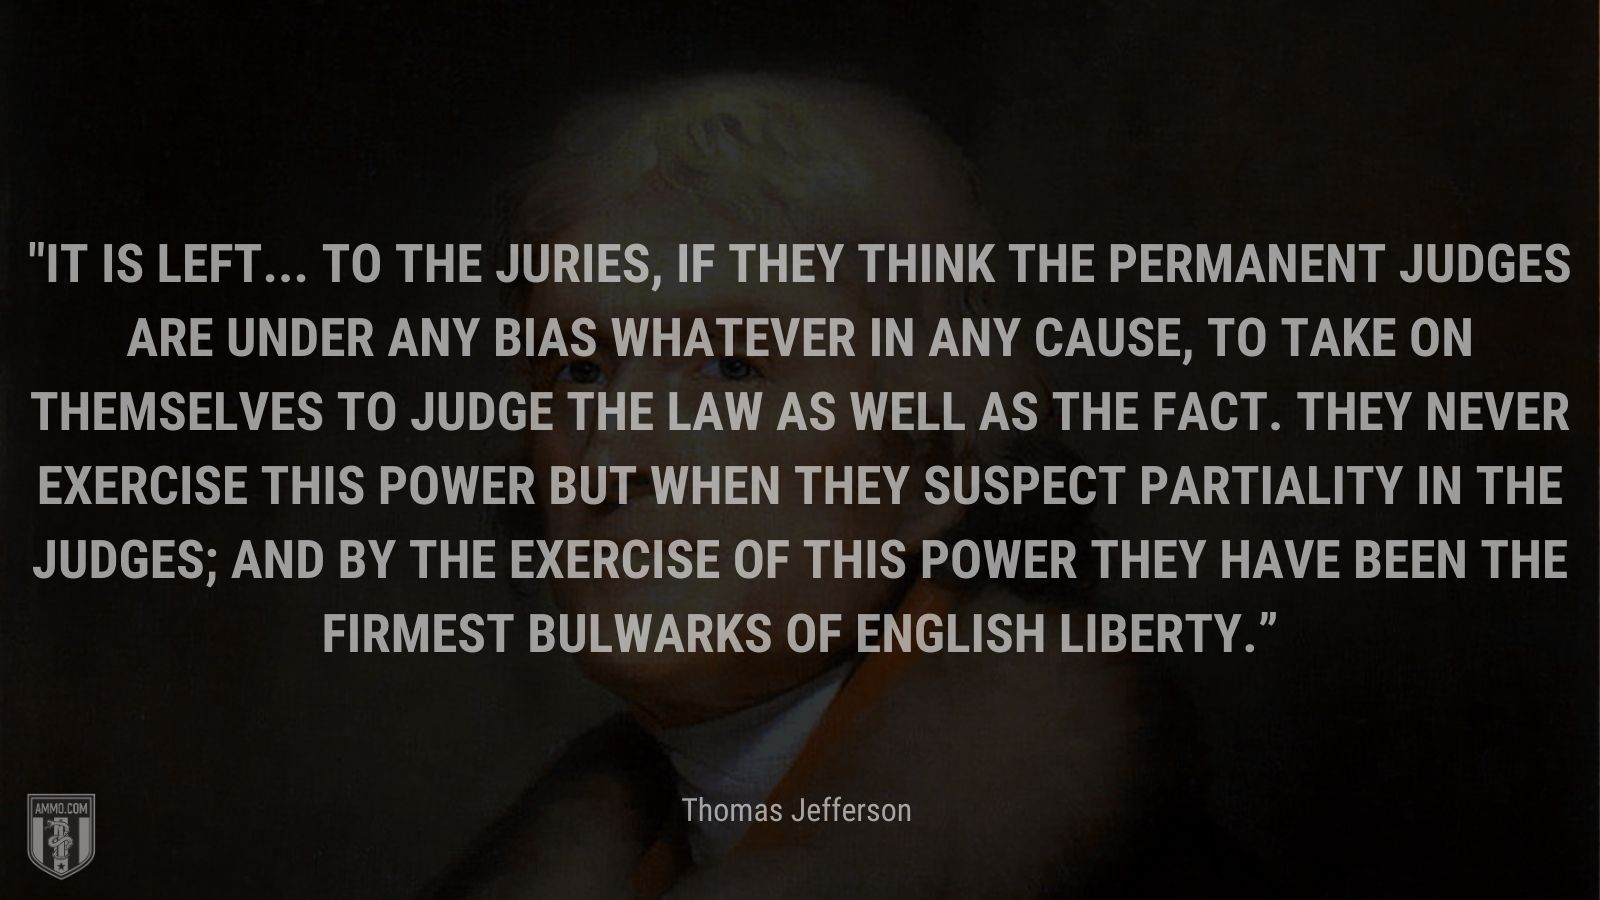 """""""It is left... to the juries, if they think the permanent judges are under any bias whatever in any cause, to take on themselves to judge the law as well as the fact. They never exercise this power but when they suspect partiality in the judges; and by the exercise of this power they have been the firmest bulwarks of English liberty."""" - Thomas Jefferson"""